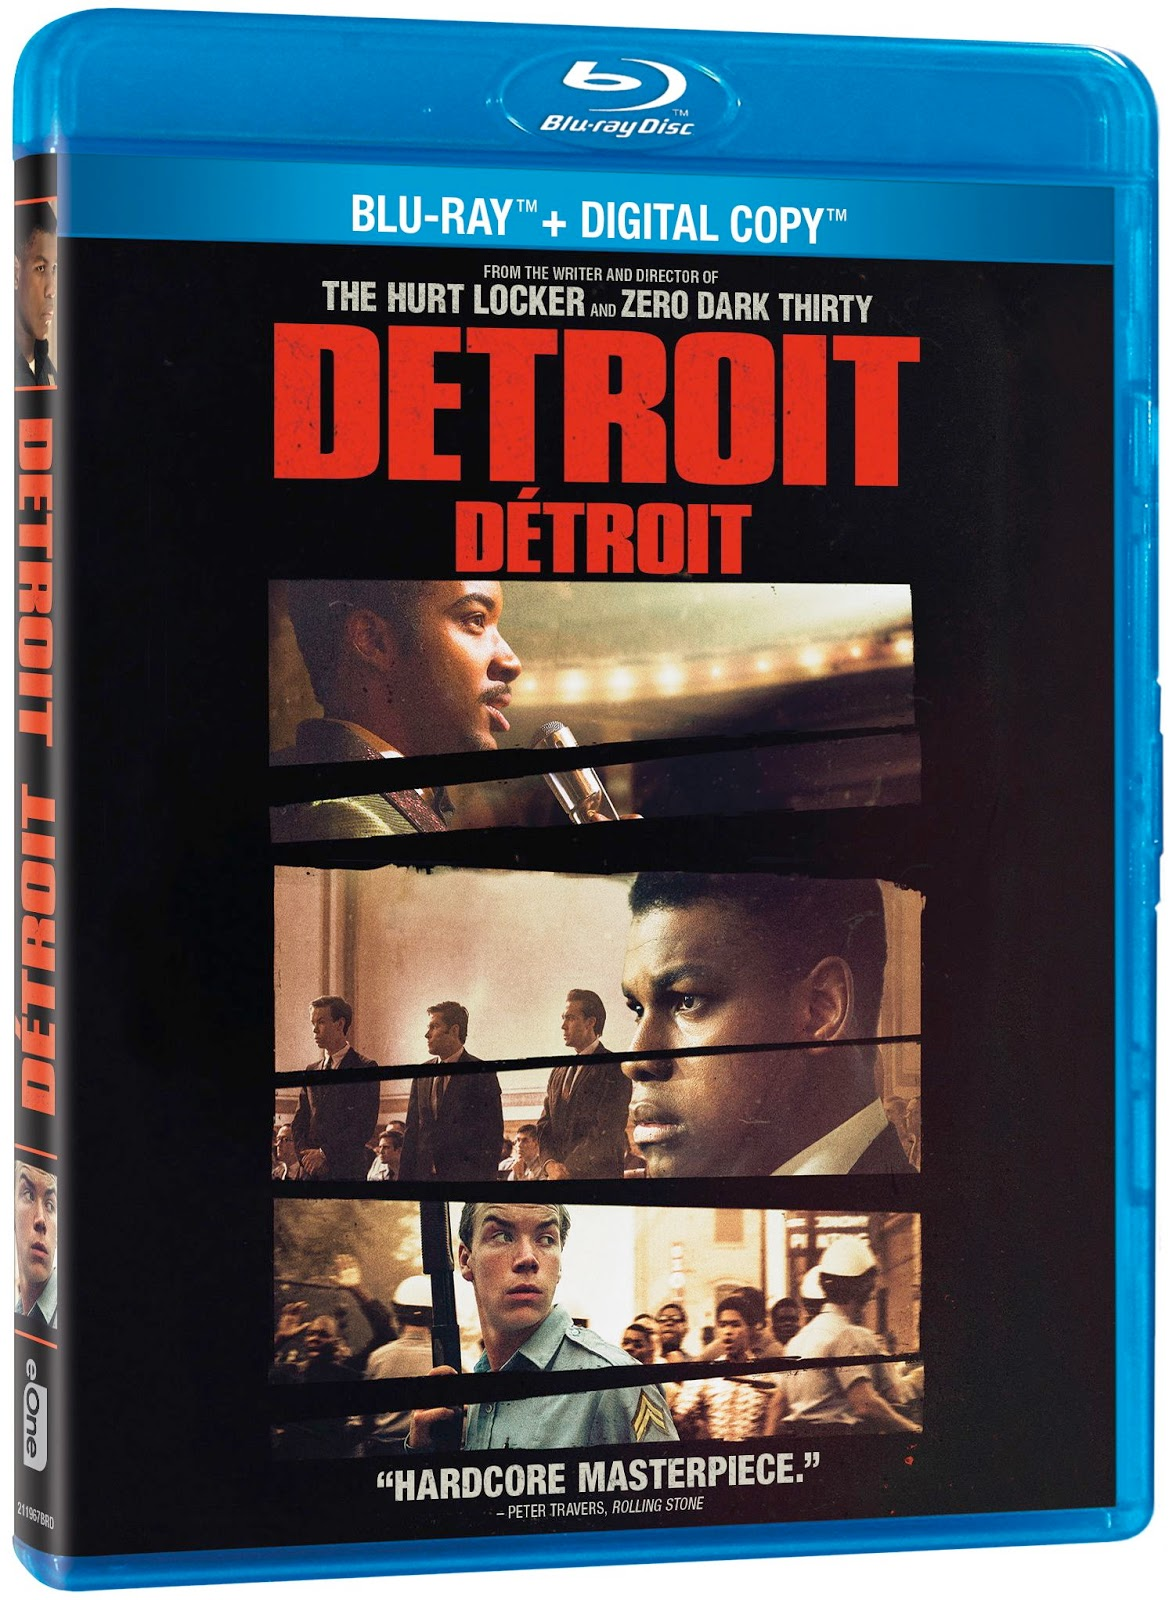 The Reel Roundup | Everything Movies & More: Win 'Detroit' on Blu-ray